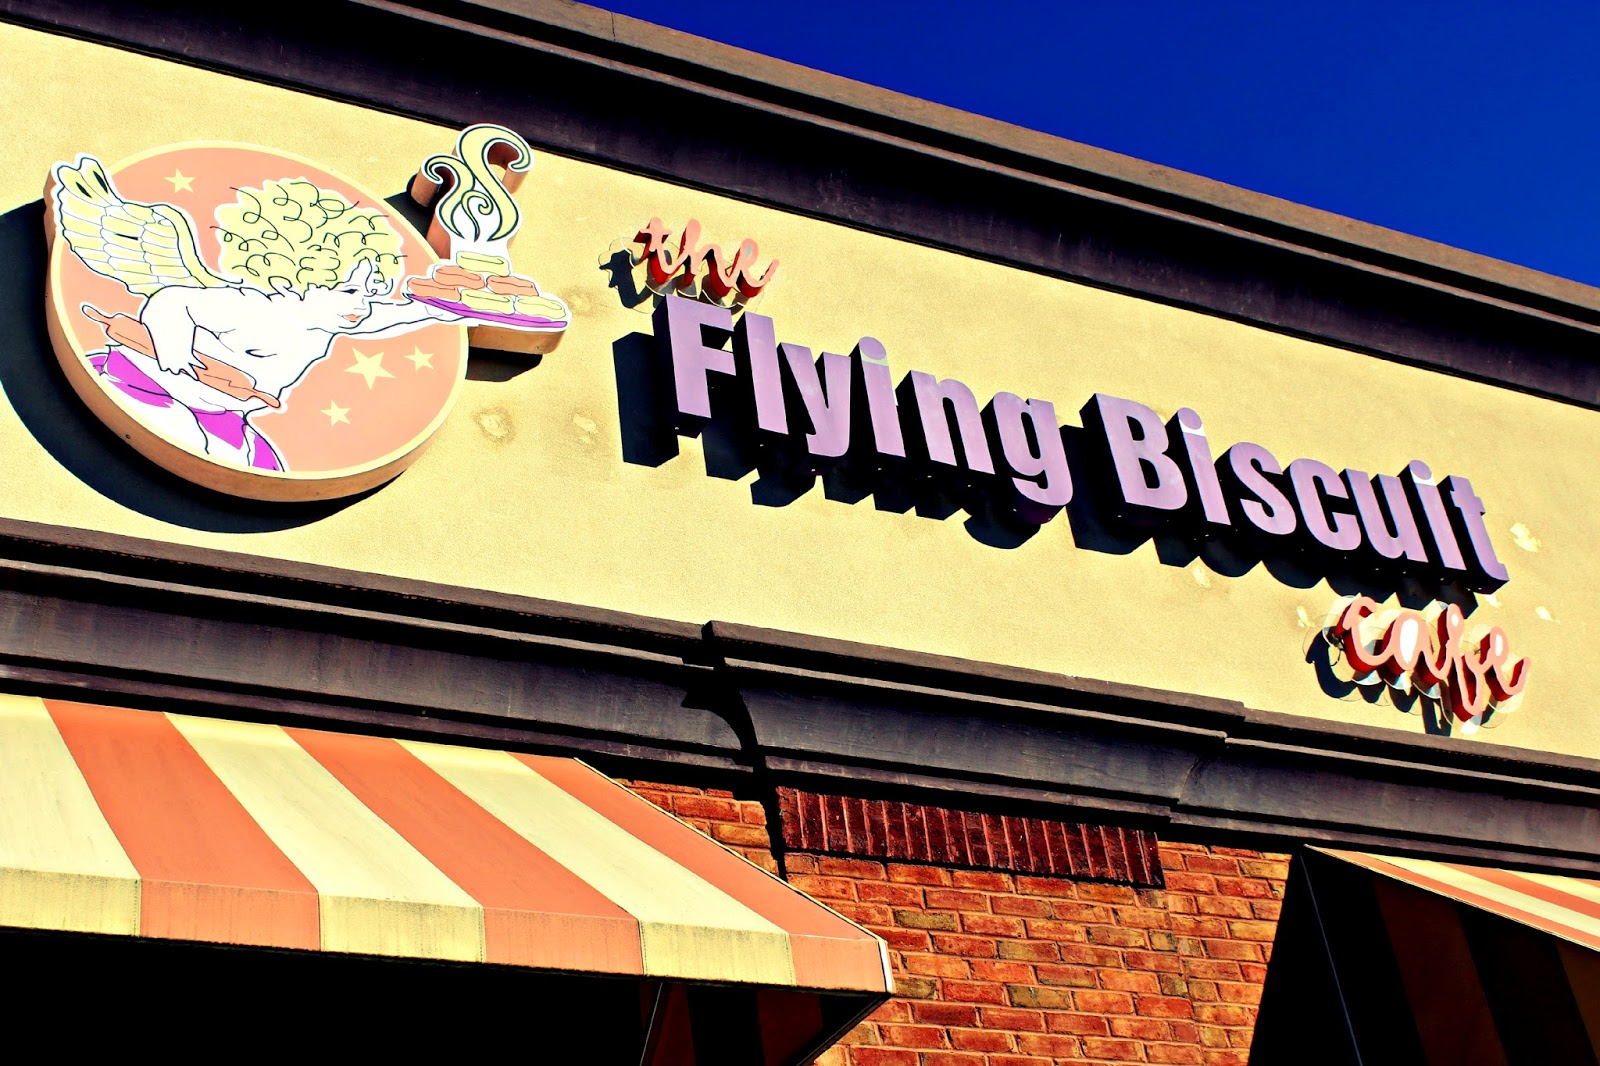 Travelers who viewed Flying Biscuit Cafe also viewed